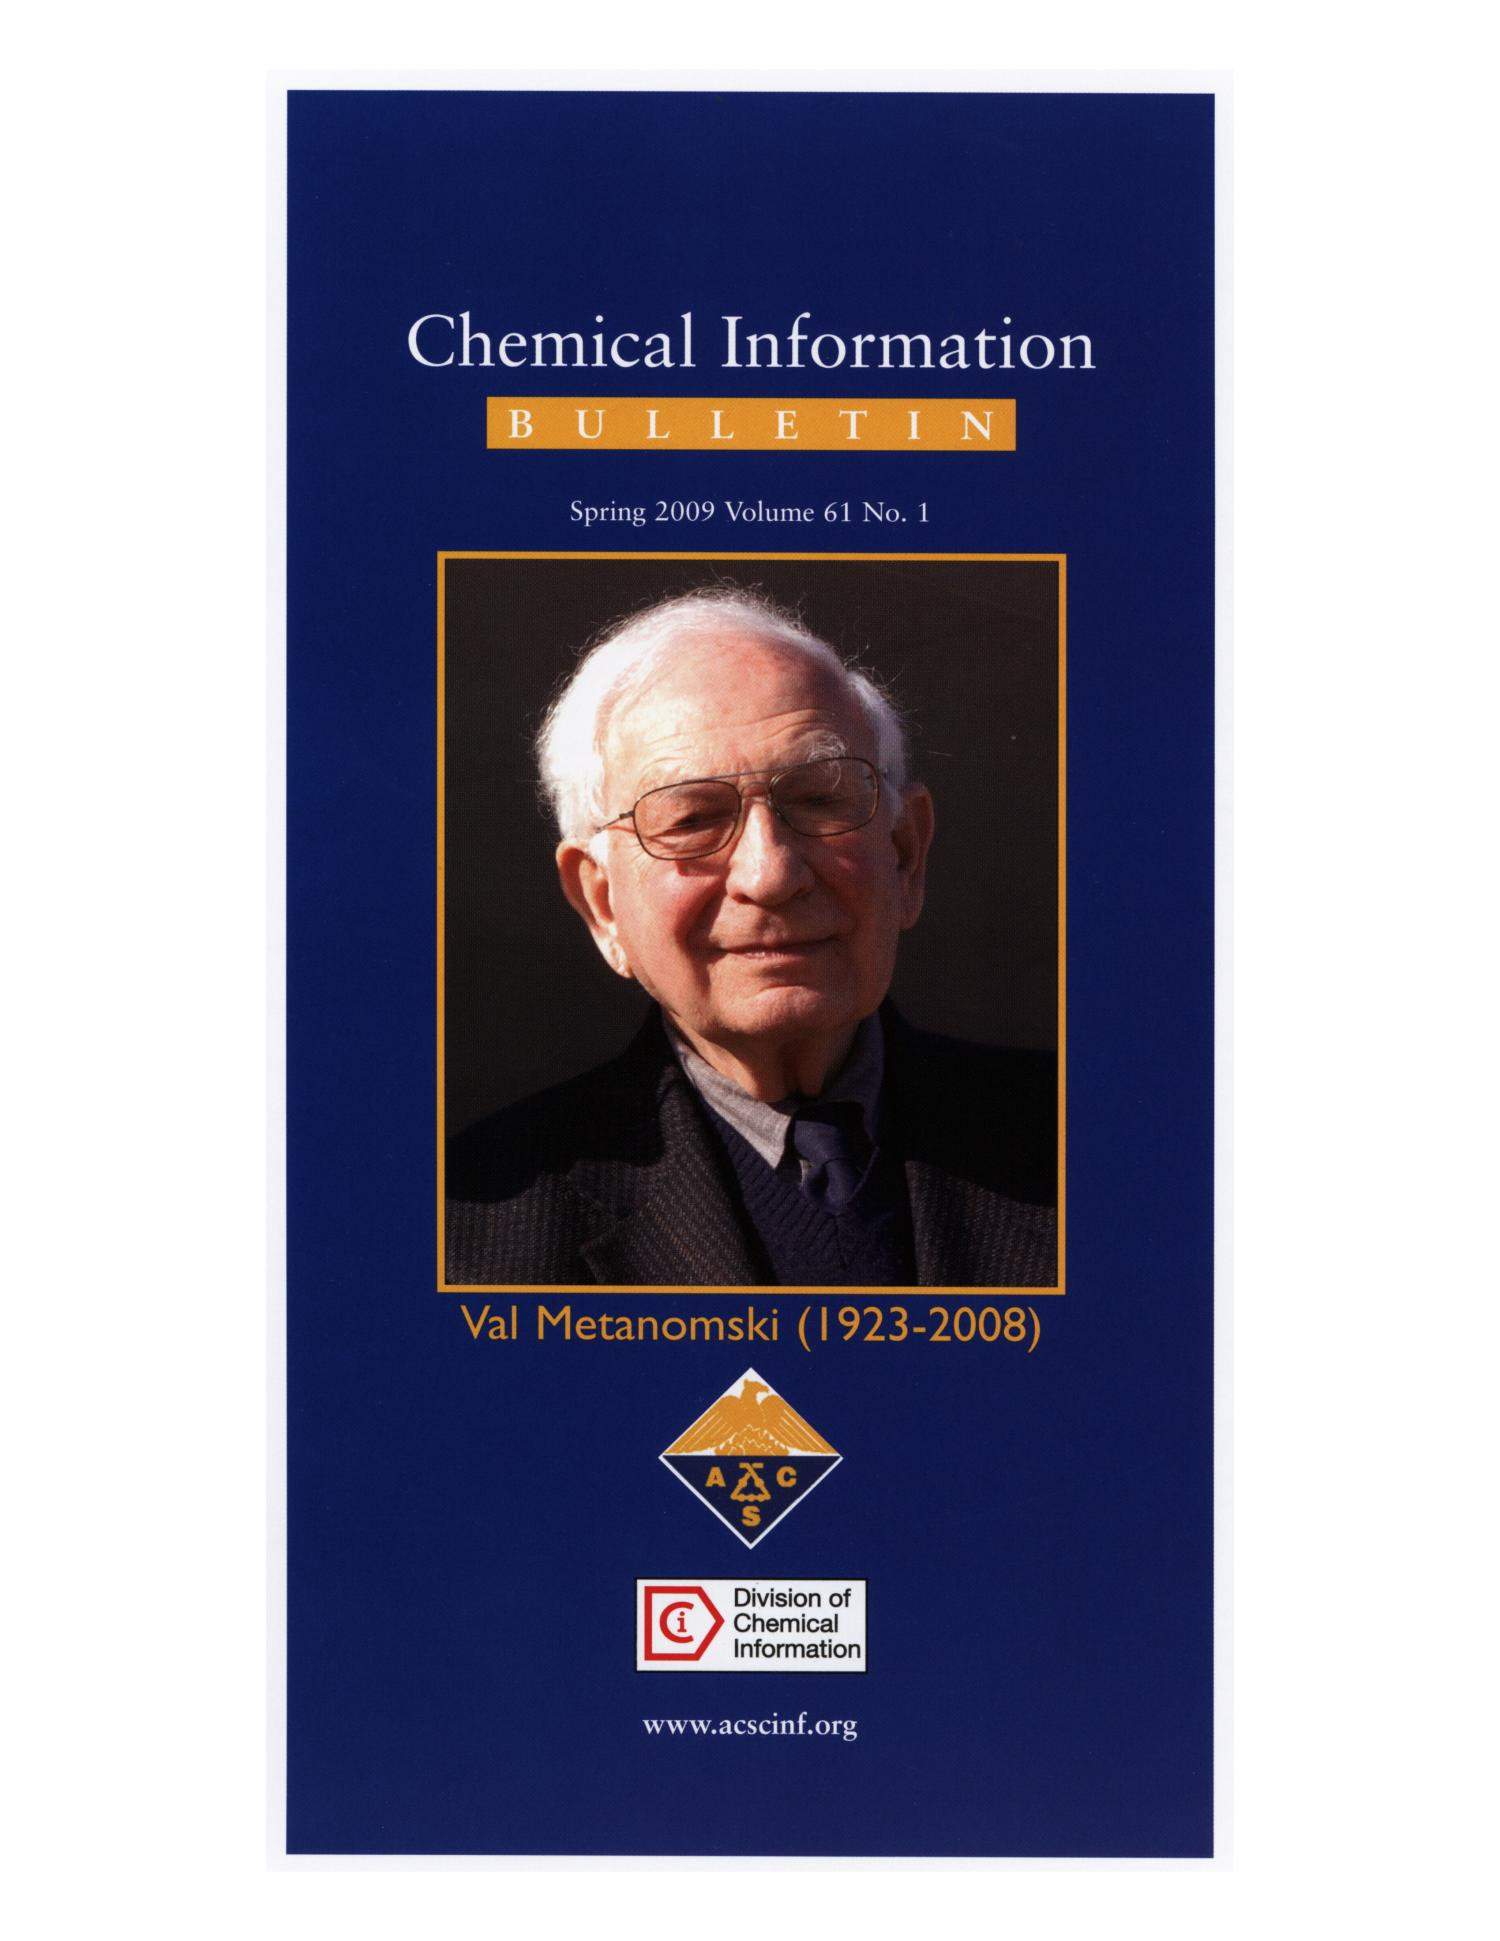 Chemical Information Bulletin, Volume 61, Number 1, Spring 2009                                                                                                      [Sequence #]: 1 of 56